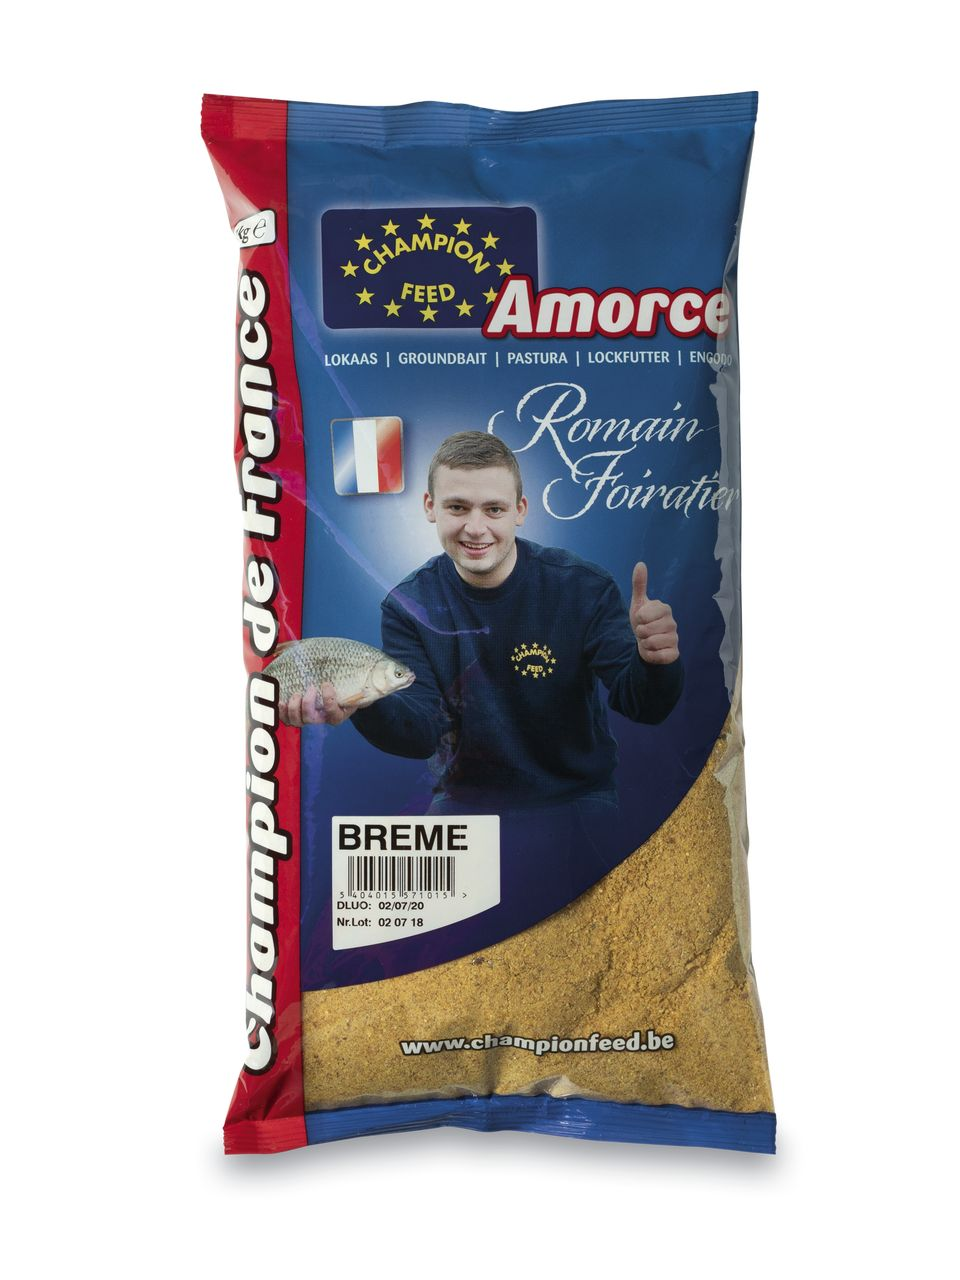 Amorce Champion Feed Champion de france Breme 1kg